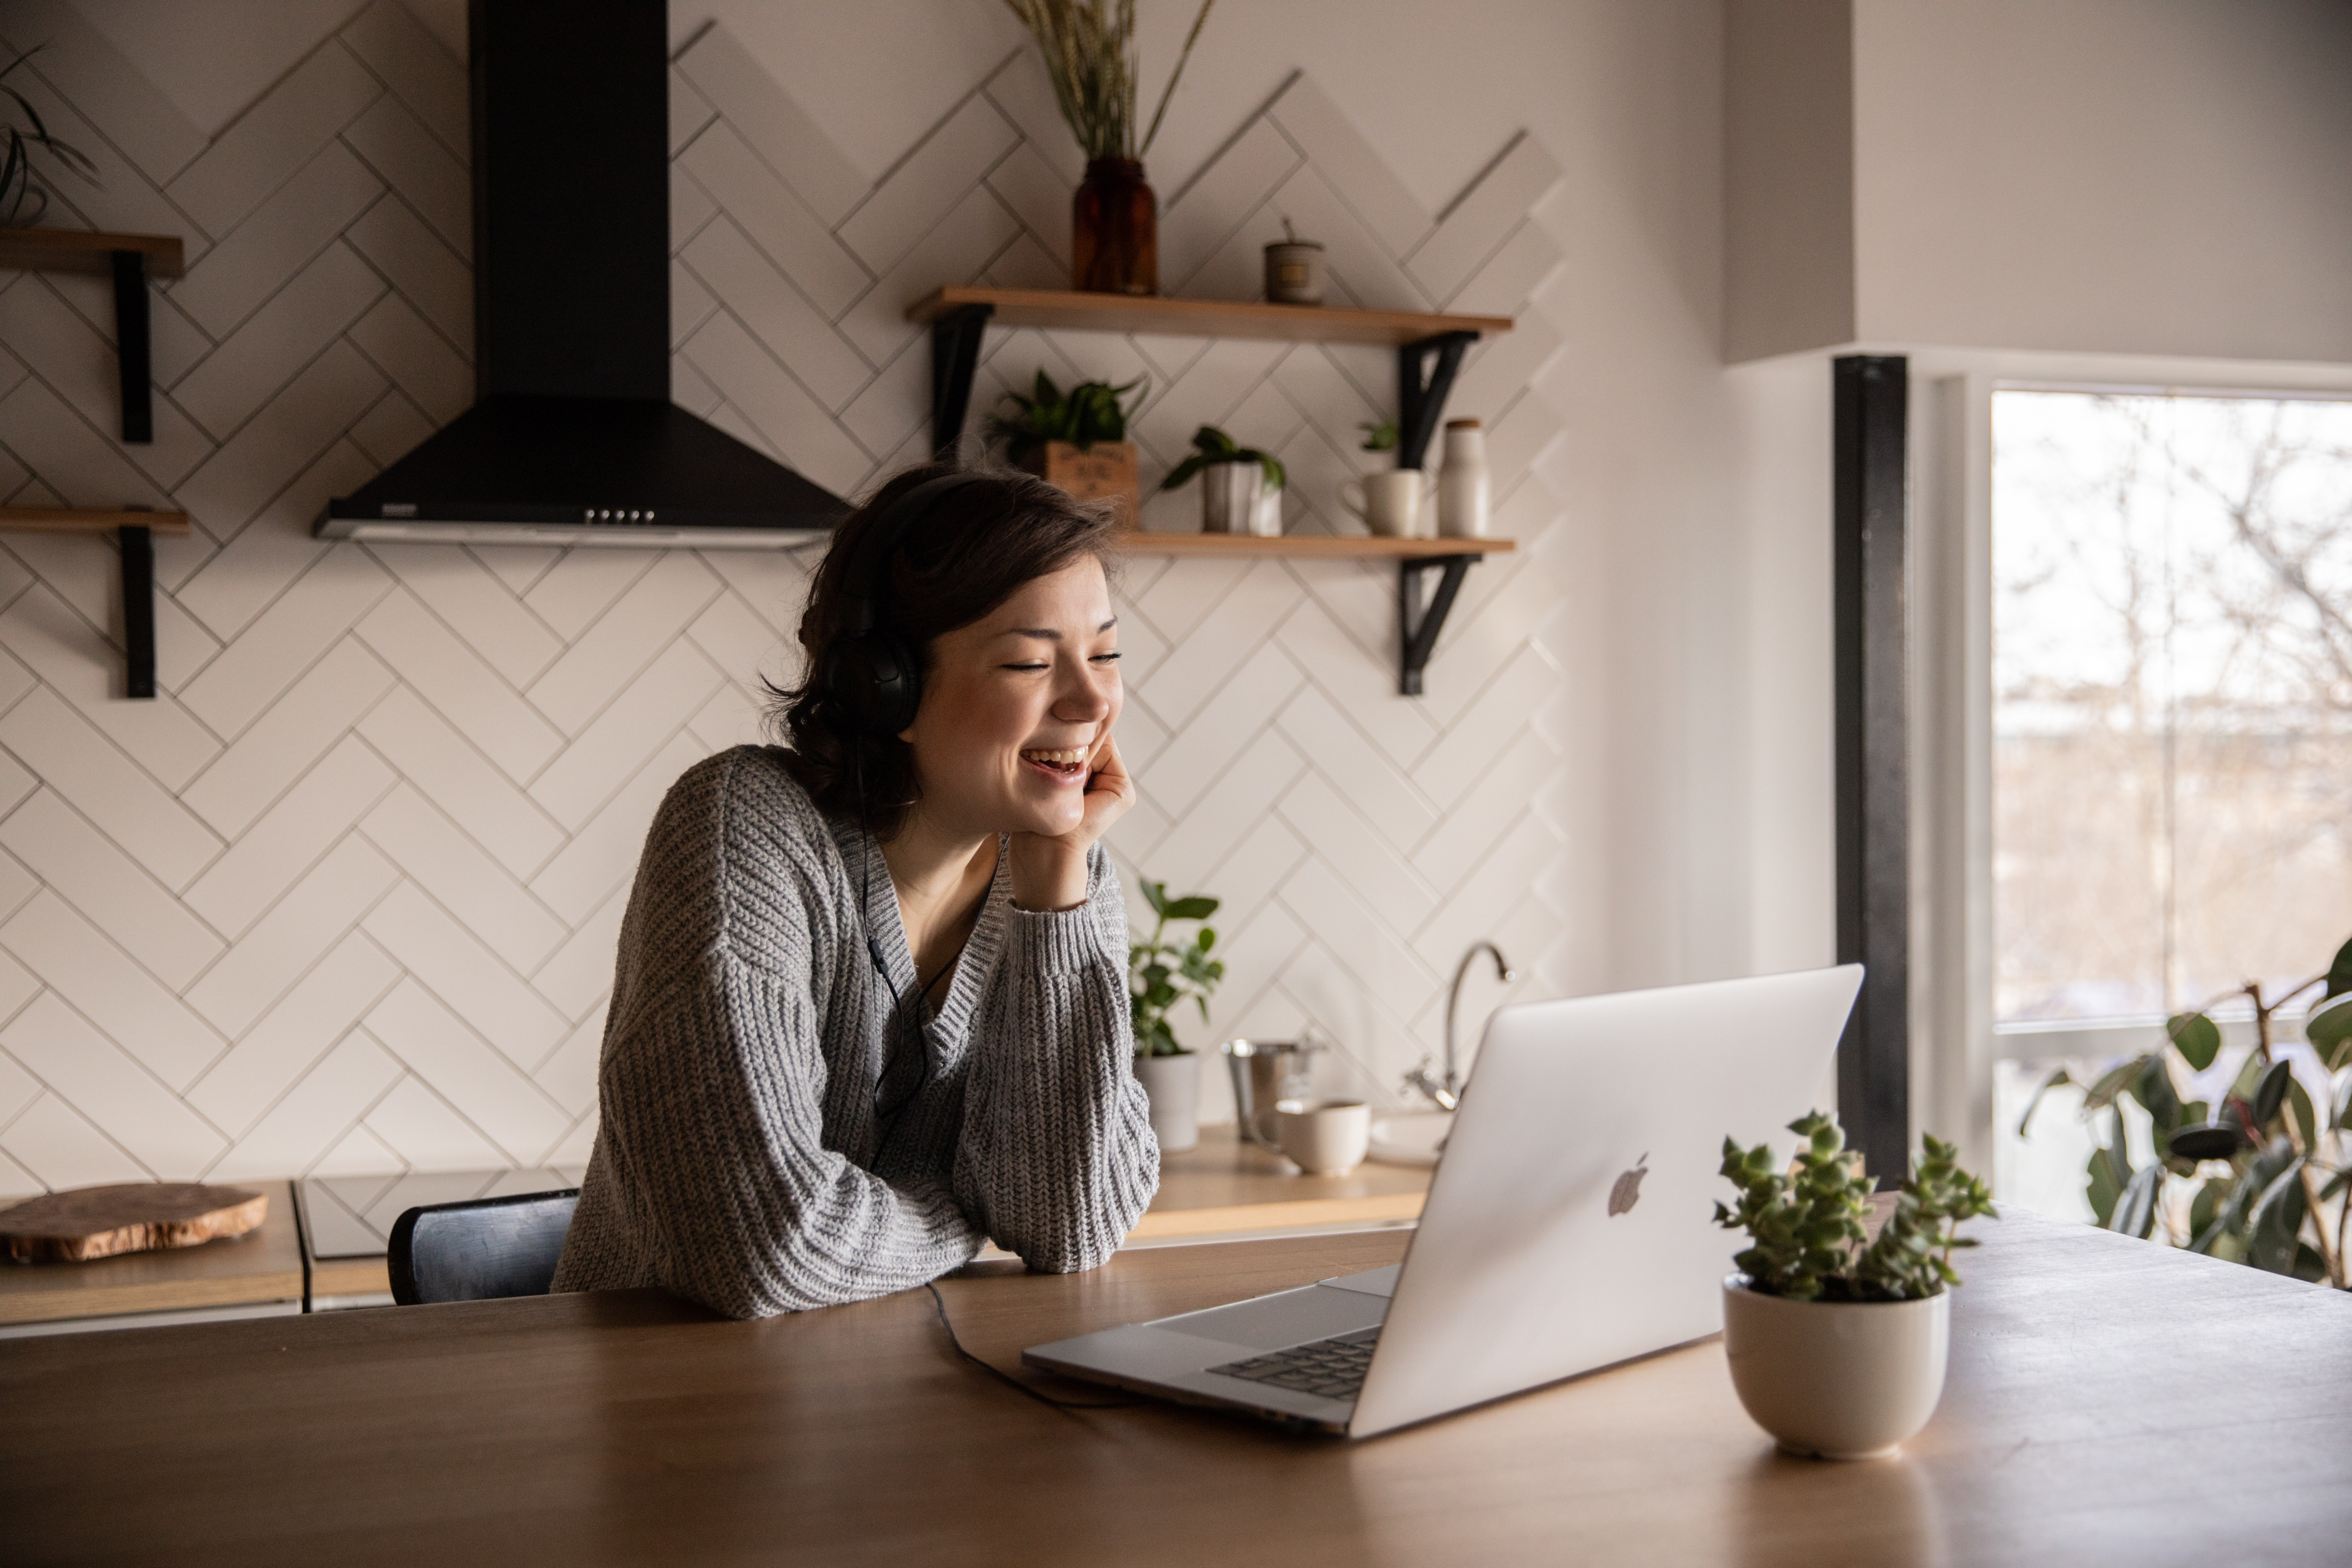 Young woman smiling at laptop in kitchen